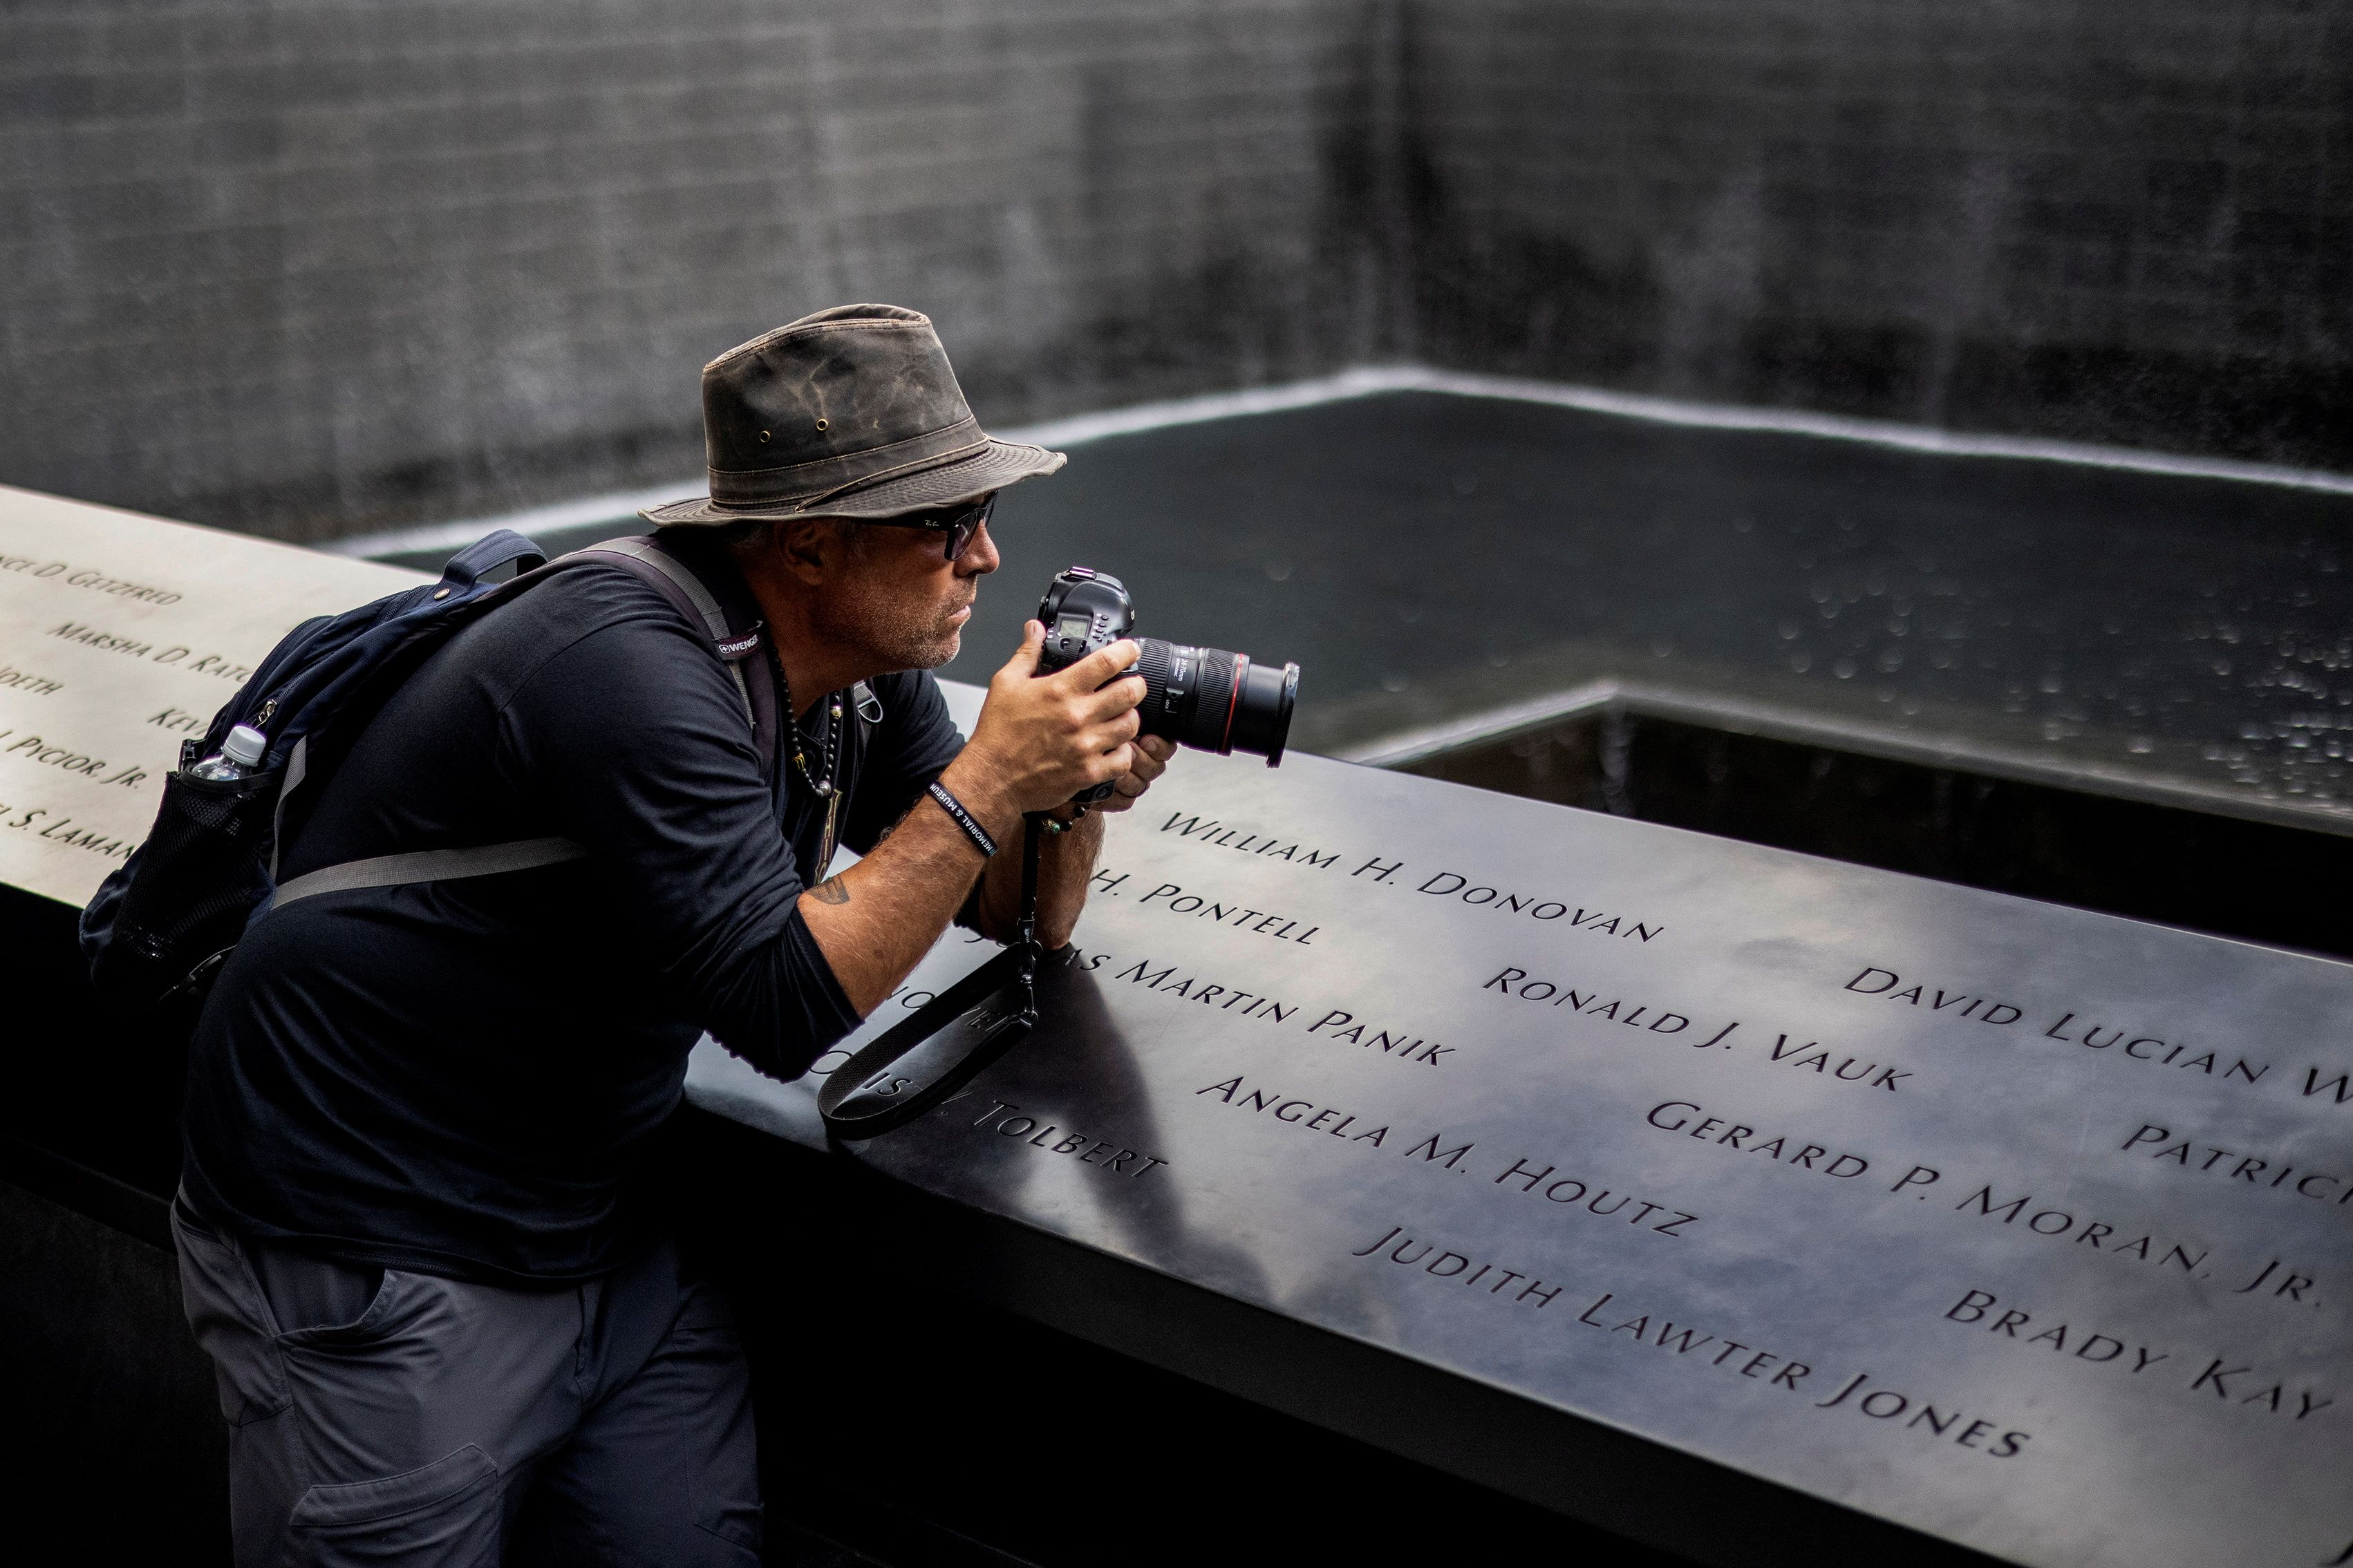 Shannon Stapleton takes photographs at the 9/11 Memorial site in Lower Manhattan, September 2, 2021. REUTERS/Carlos Barria